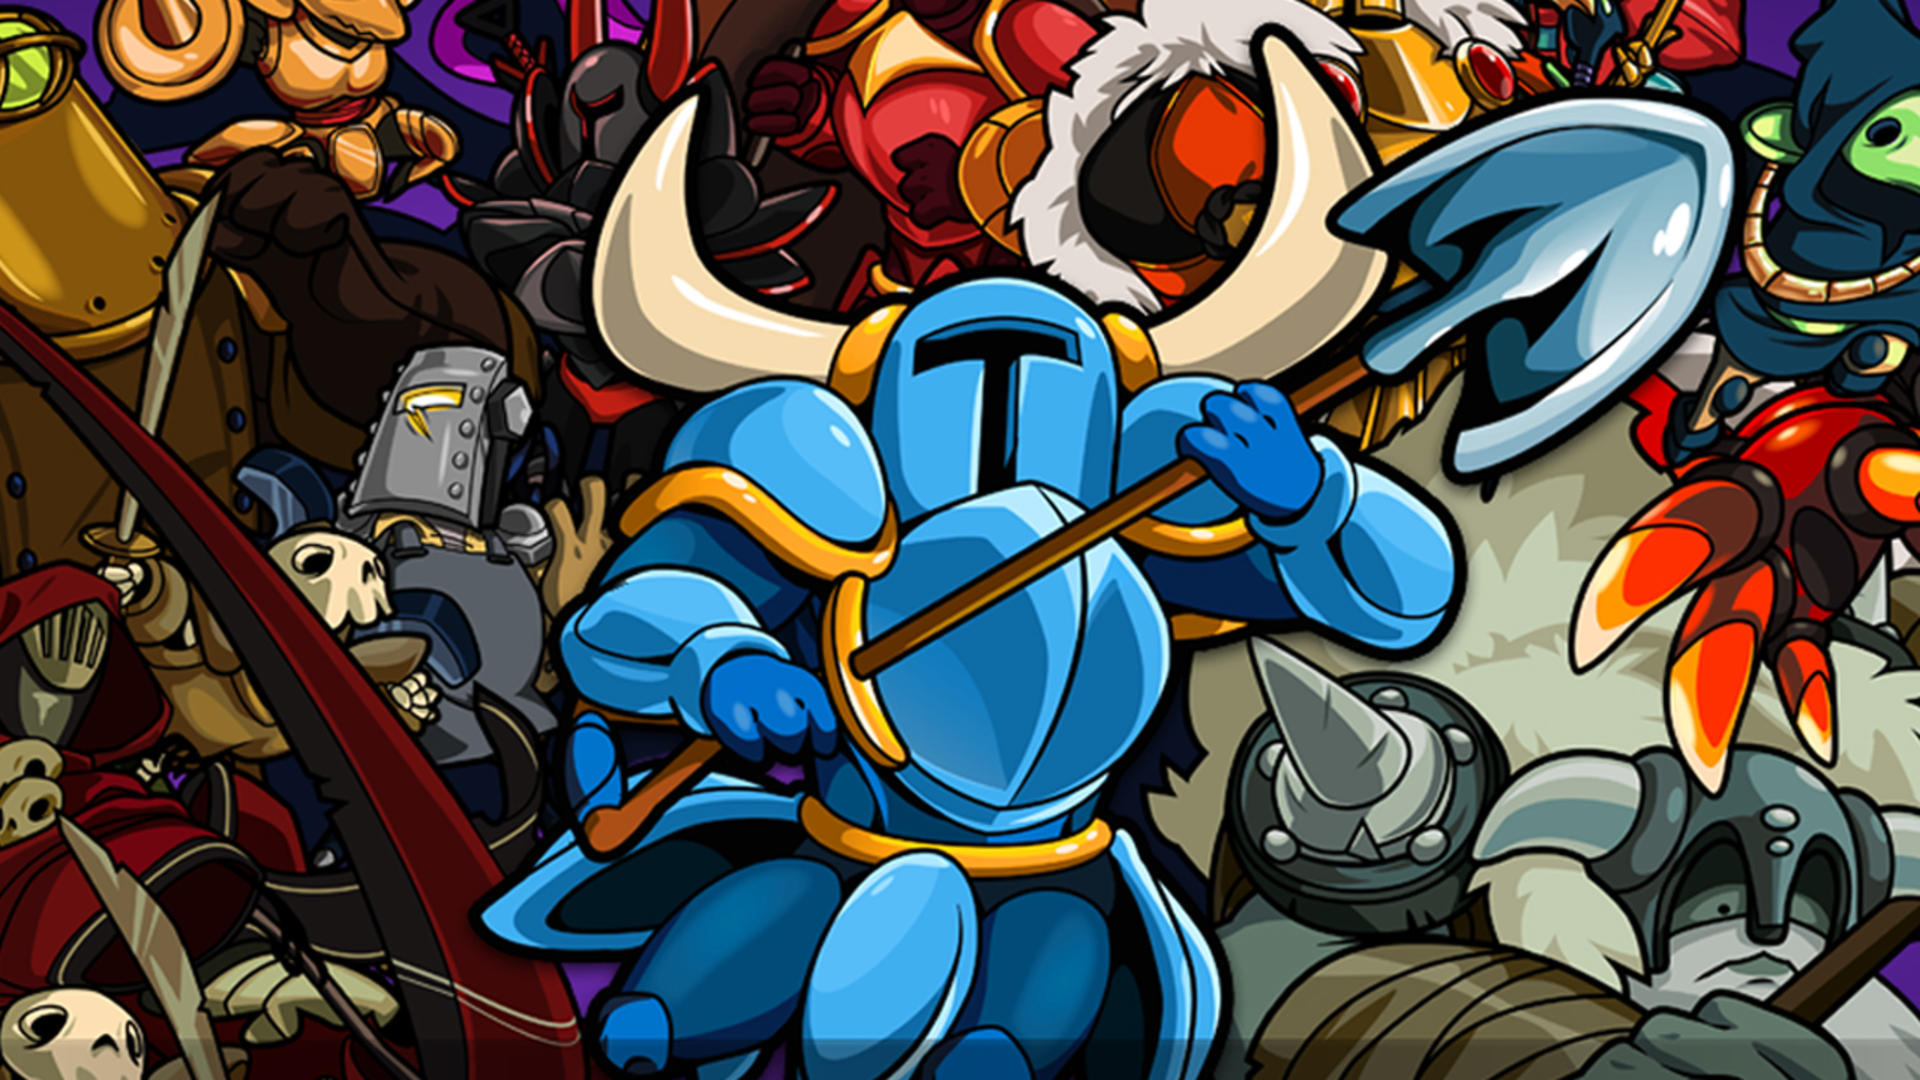 Shovel Knight creators talk Kickstarter, new expansions and how Switch accounts for 'about 25%' of total sales